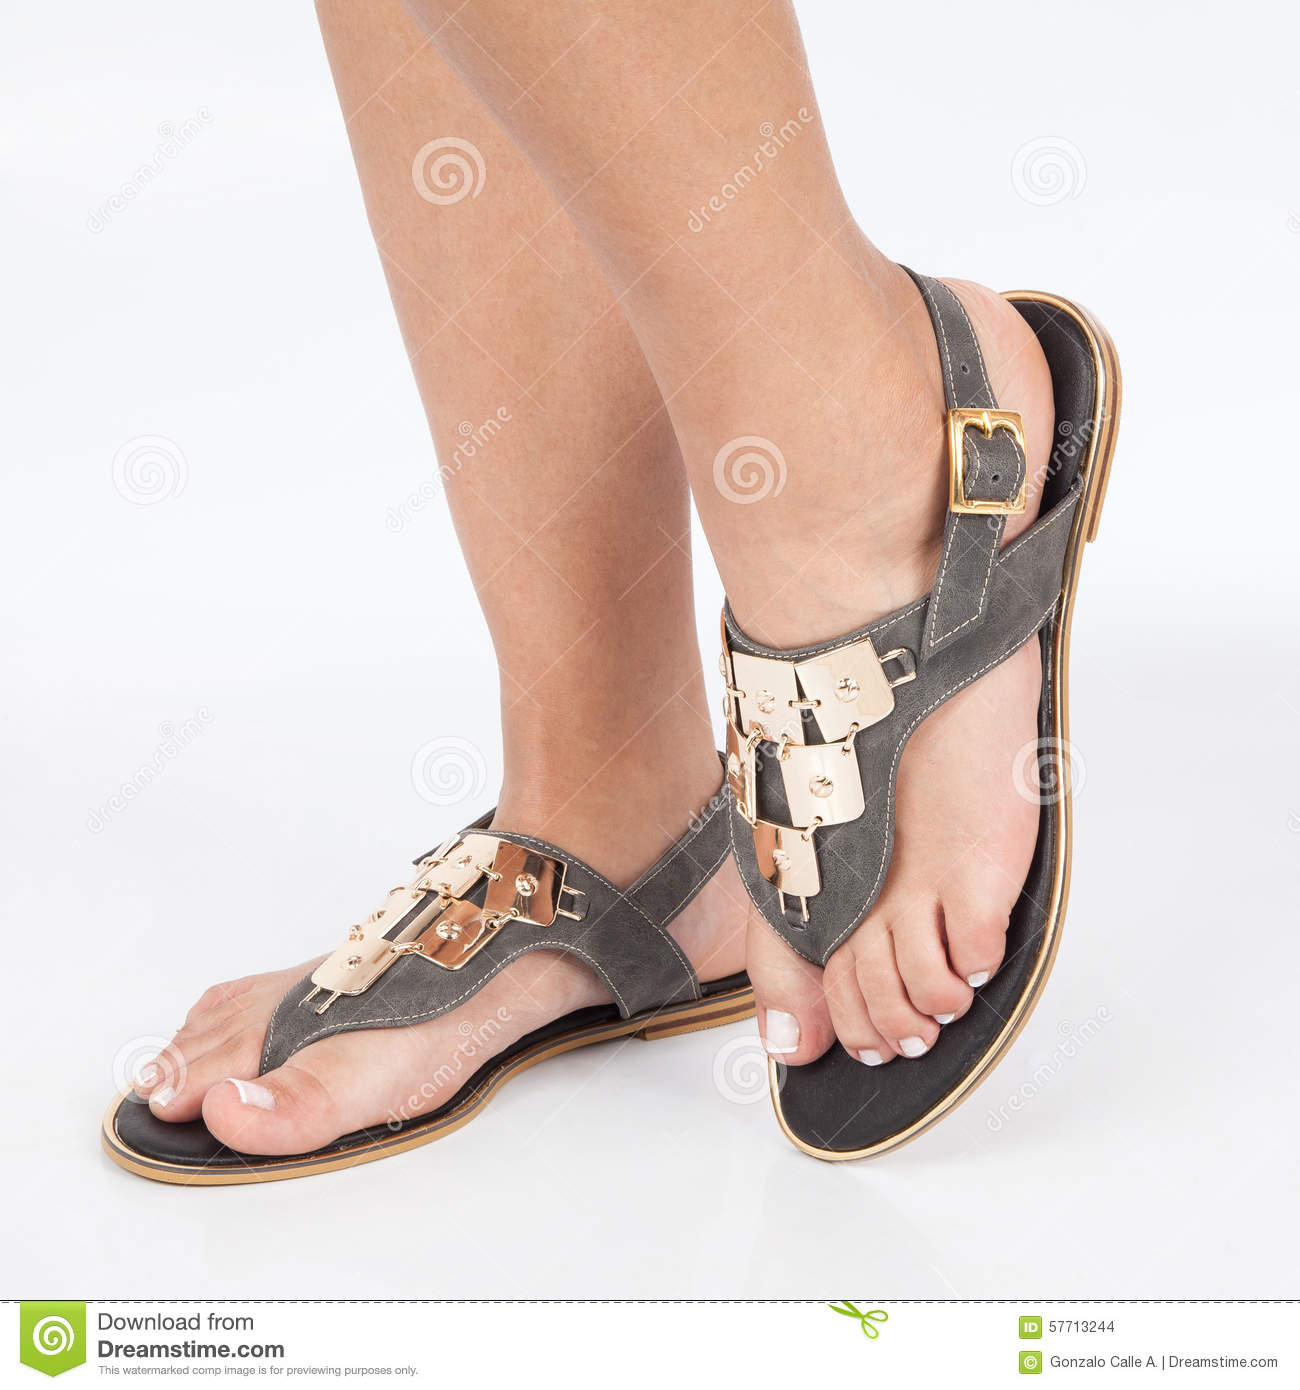 cd0dbd743aa1 Gray leather sandals with gold applied on feet the mujere on white  background